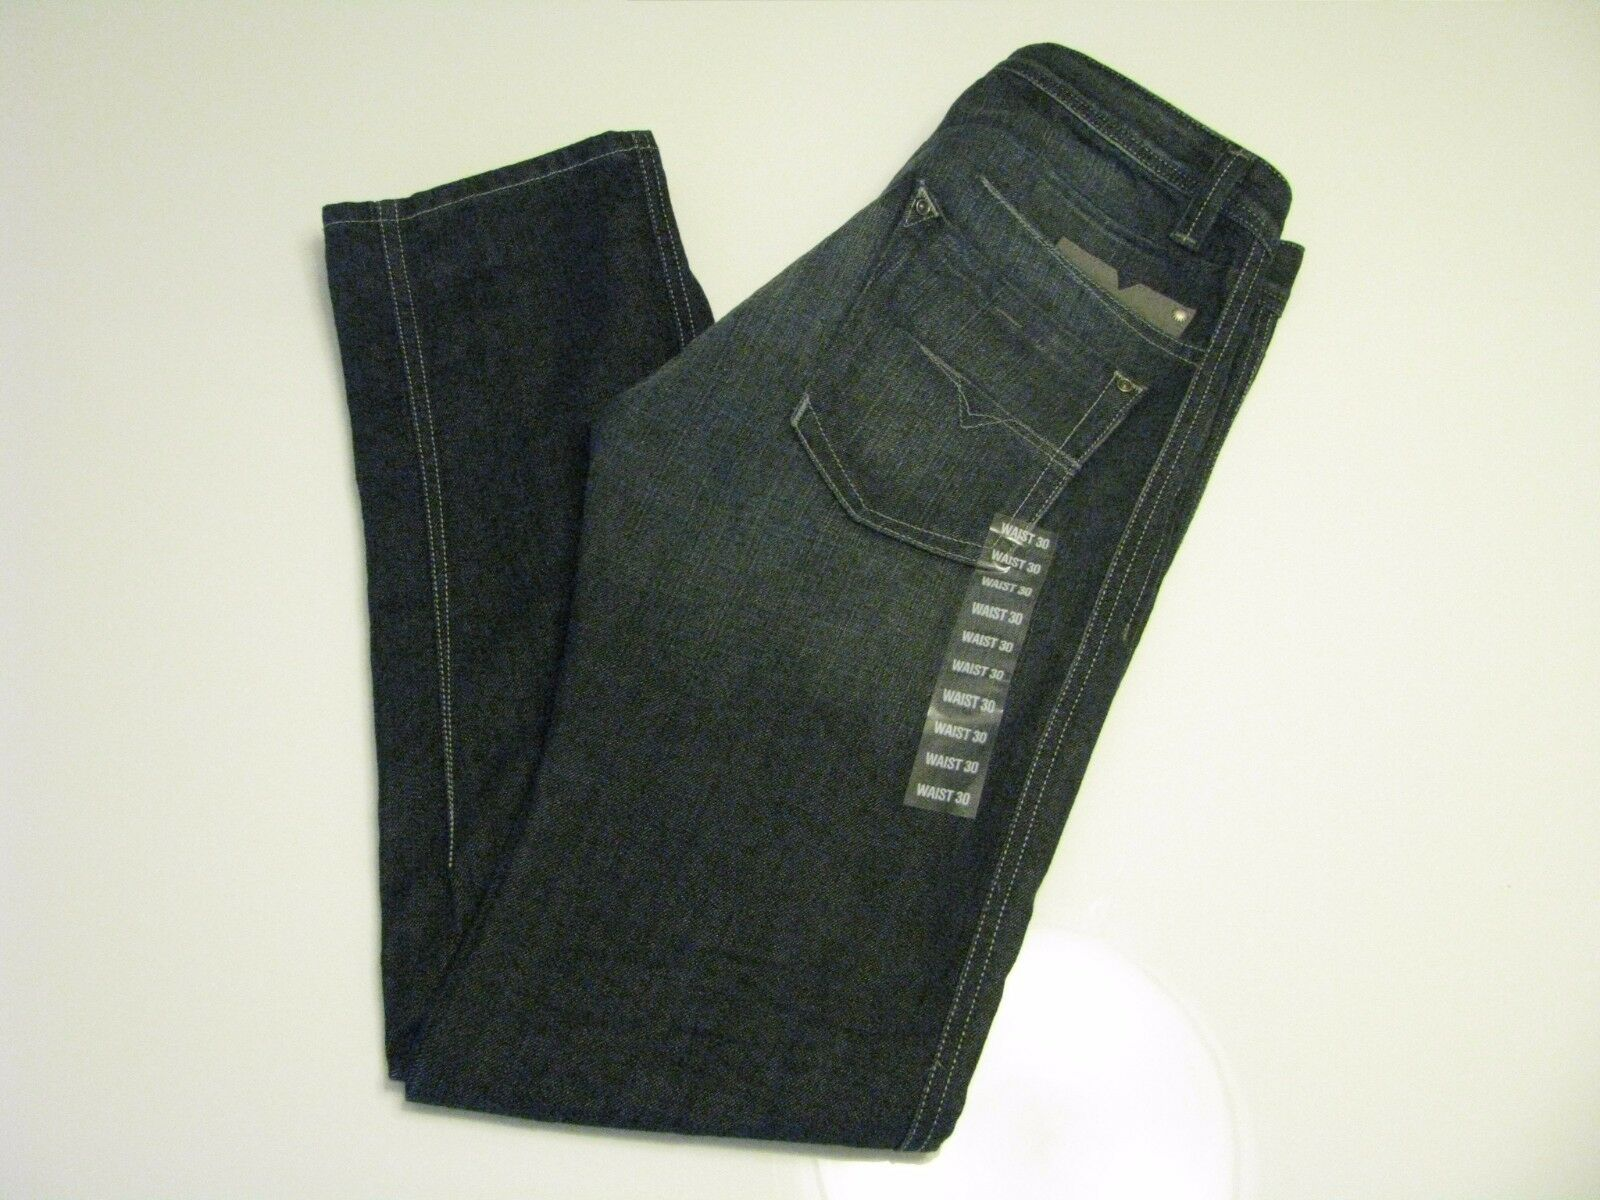 NWT Diesel Jeans Darron Wash ORZ31 Regular Slim Fit Tapered Leg  SZ 30 32